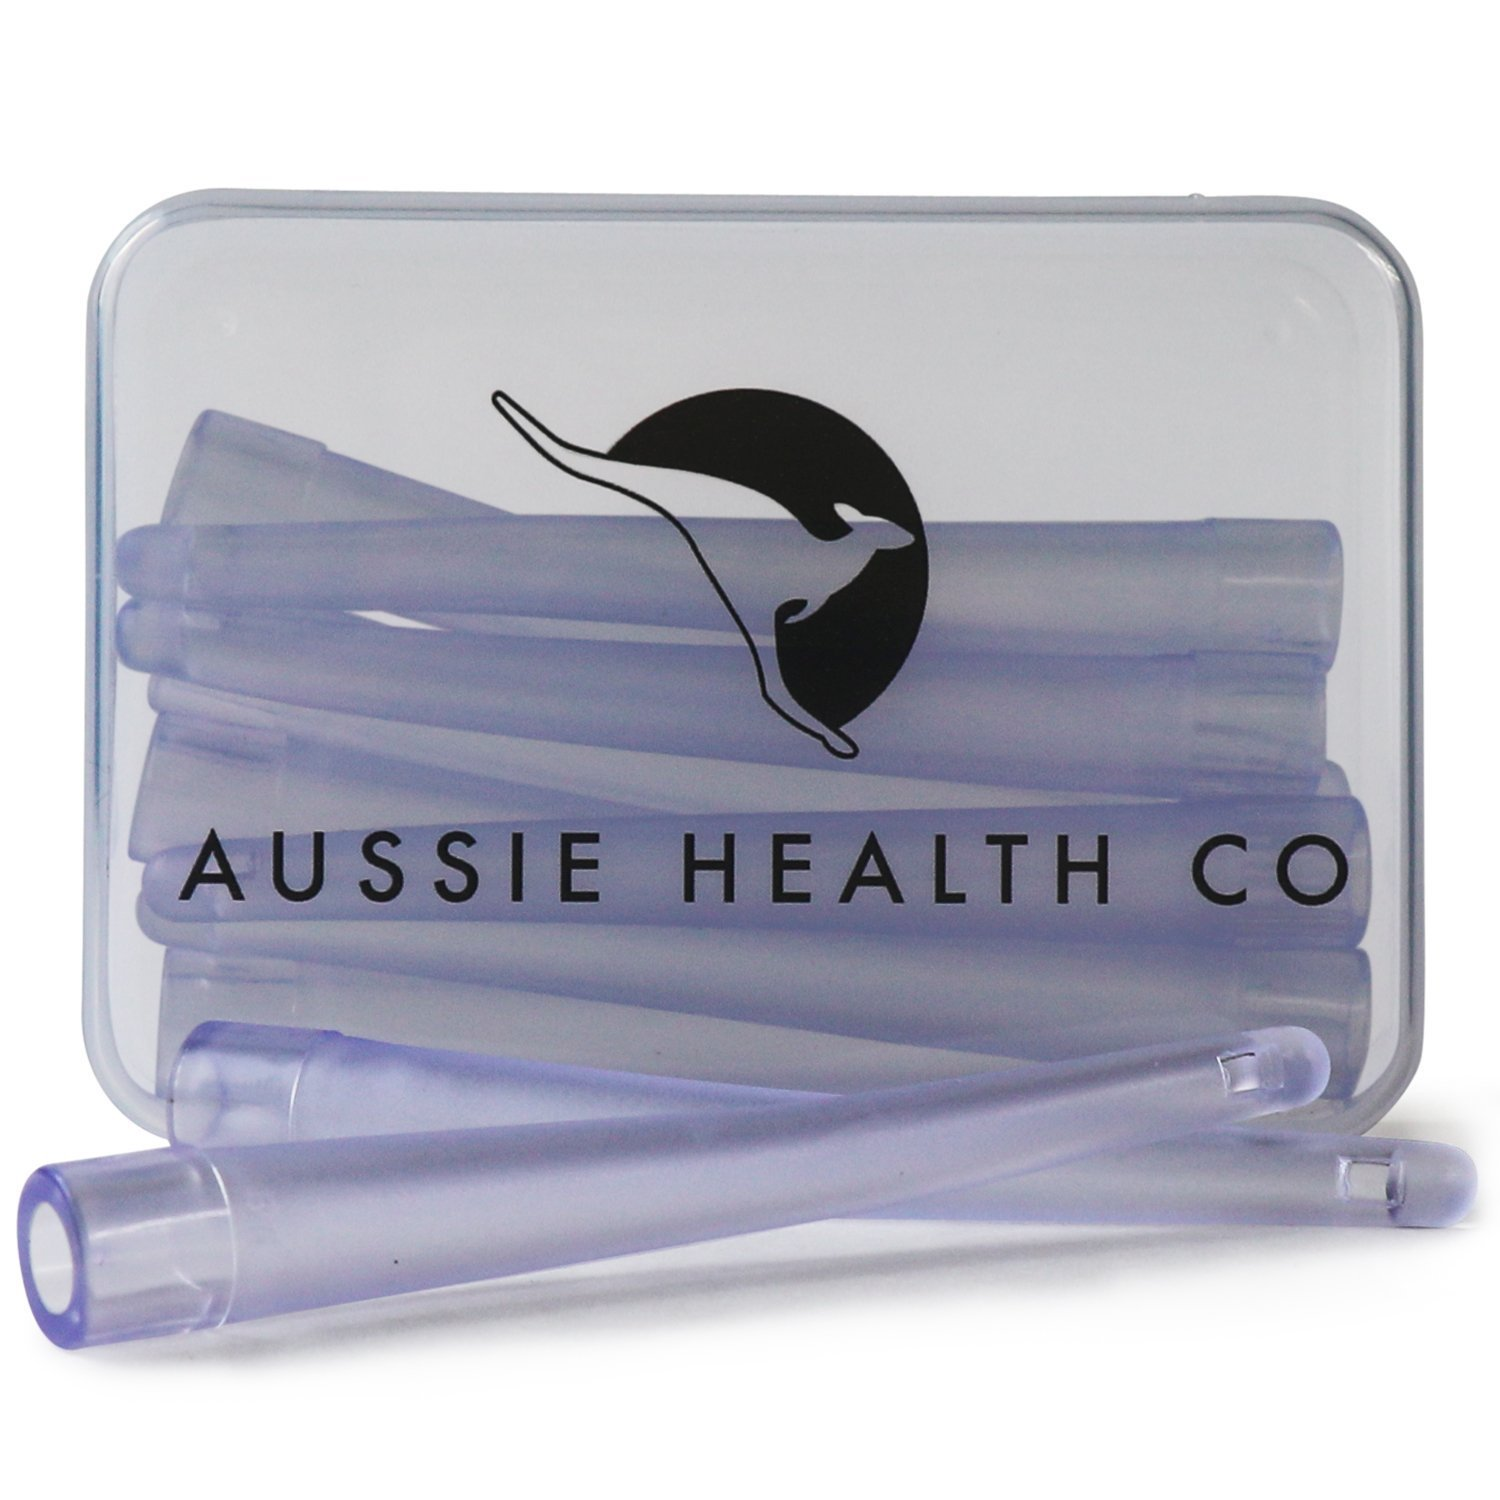 AUSSIE HEALTH CO Enema Bag, Bucket & Bulb Kit Nozzle Tips (Box of 10) - BPA/Phthalates Free, Flexible, Soft and Comfortable PVC by AUSSIE HEALTH CO